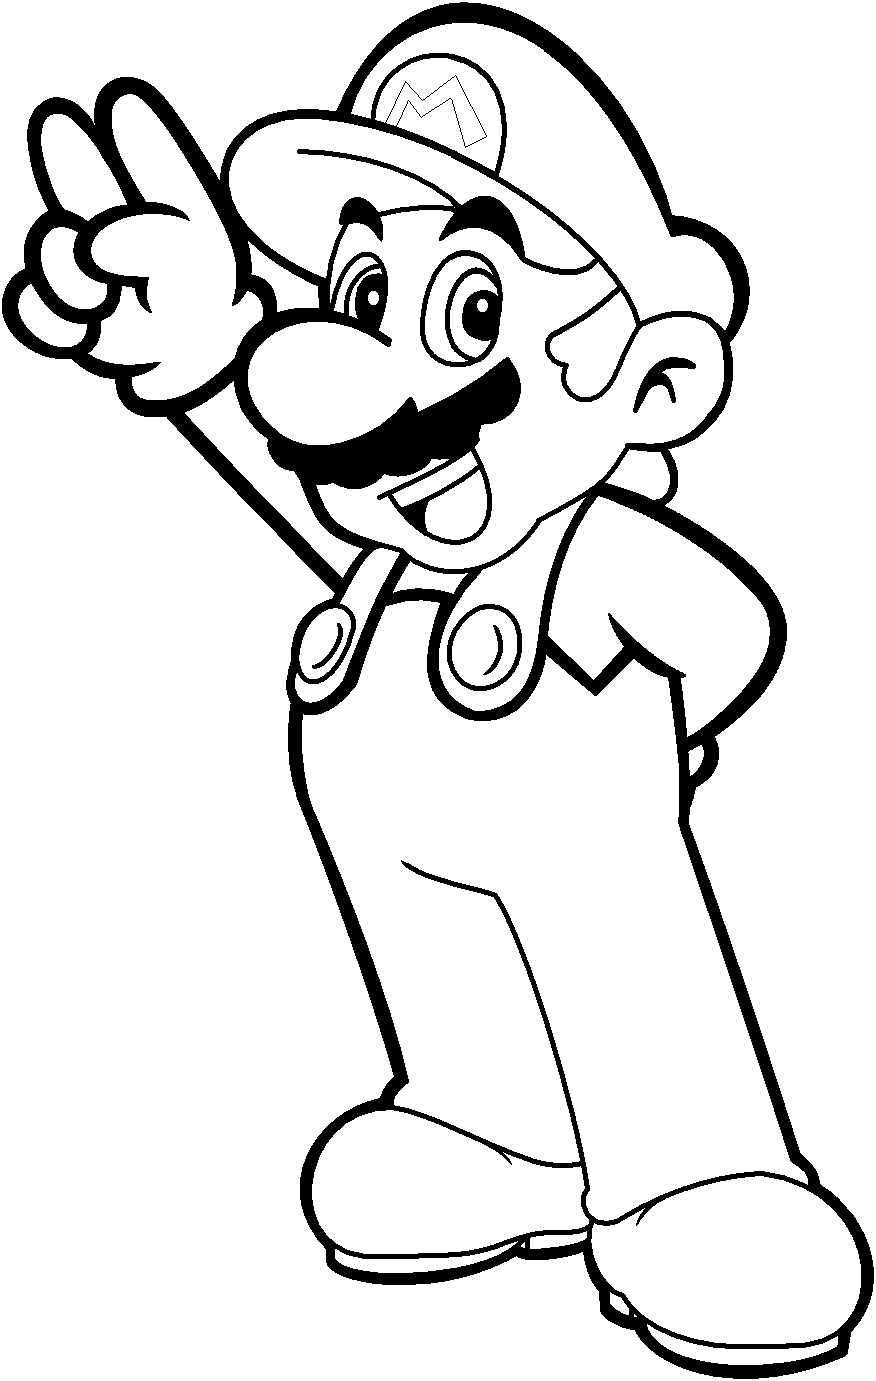 mario pictures to print super mario coloring pages print to mario pictures